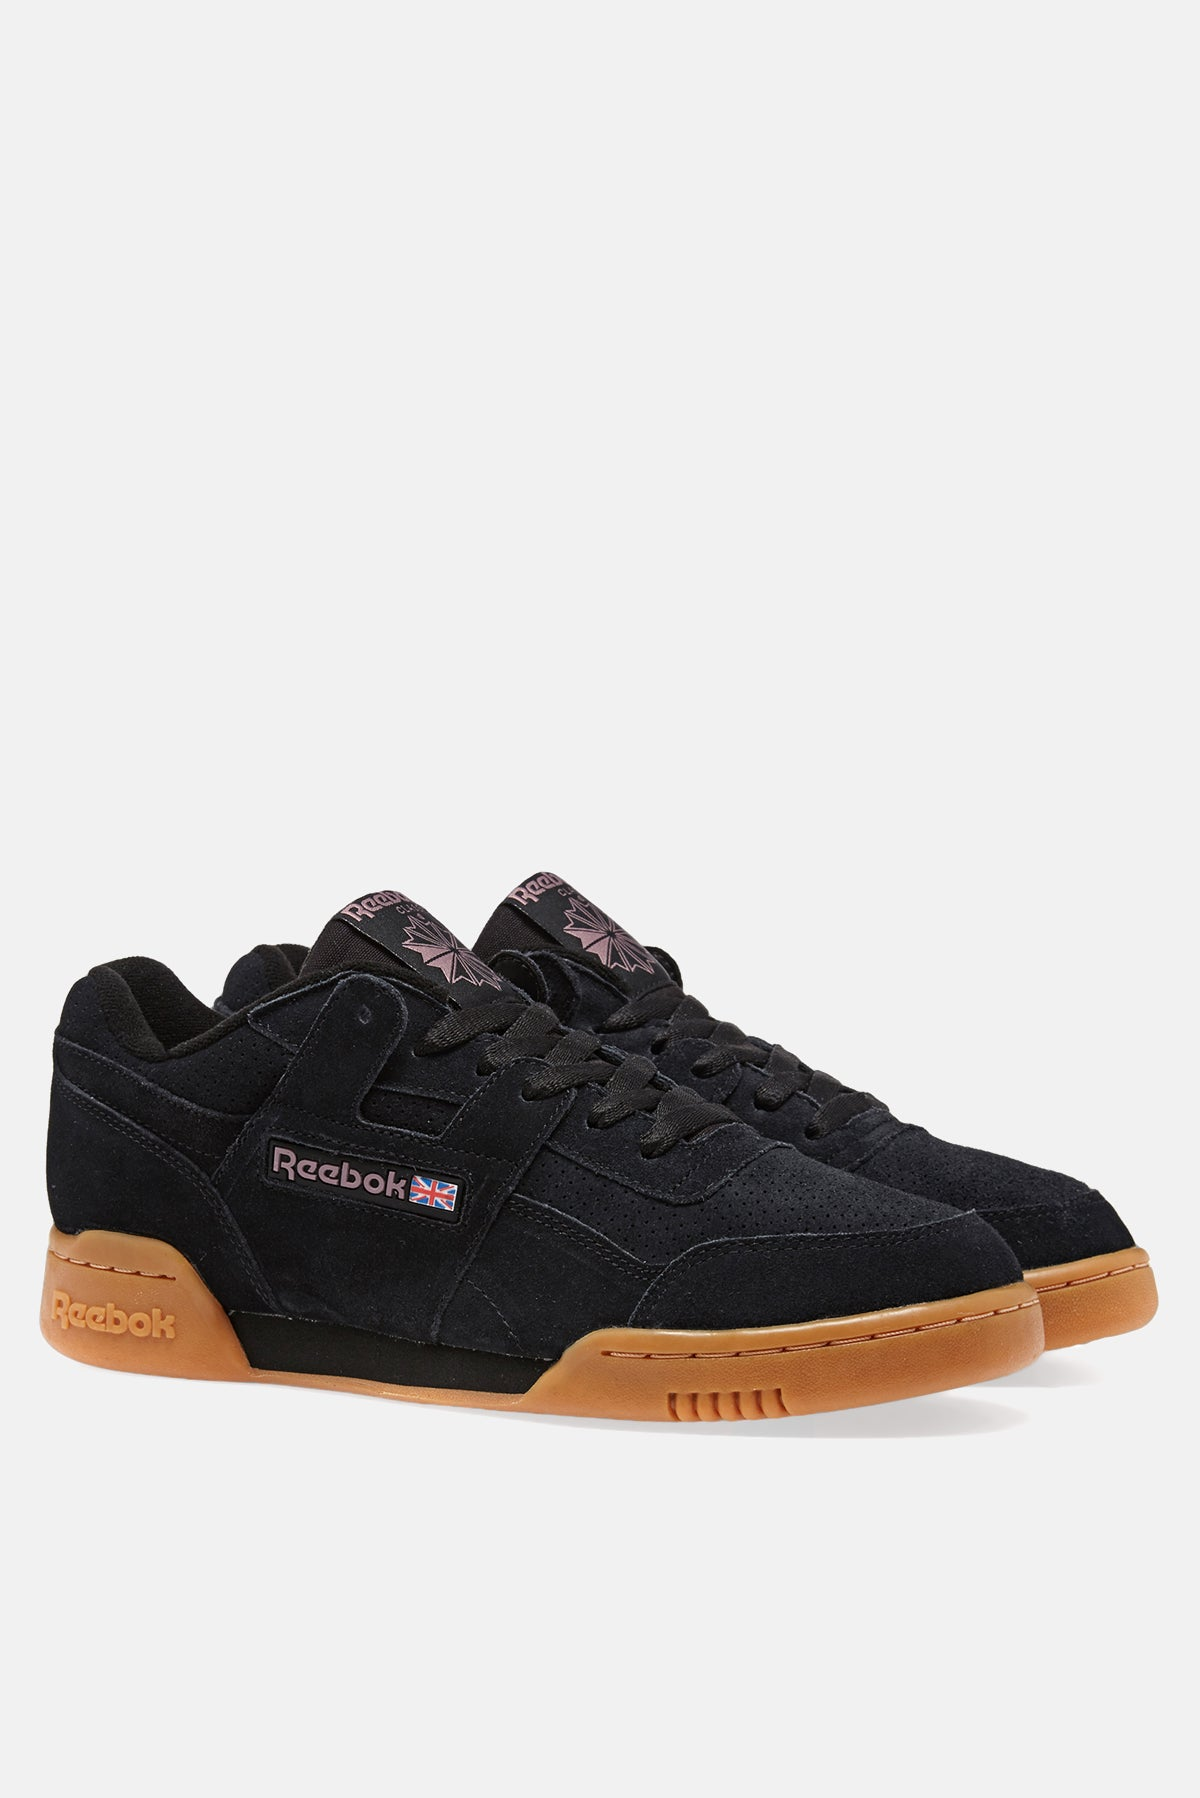 Chaussures Reebok Workout Plus Mu disponible sur Priory